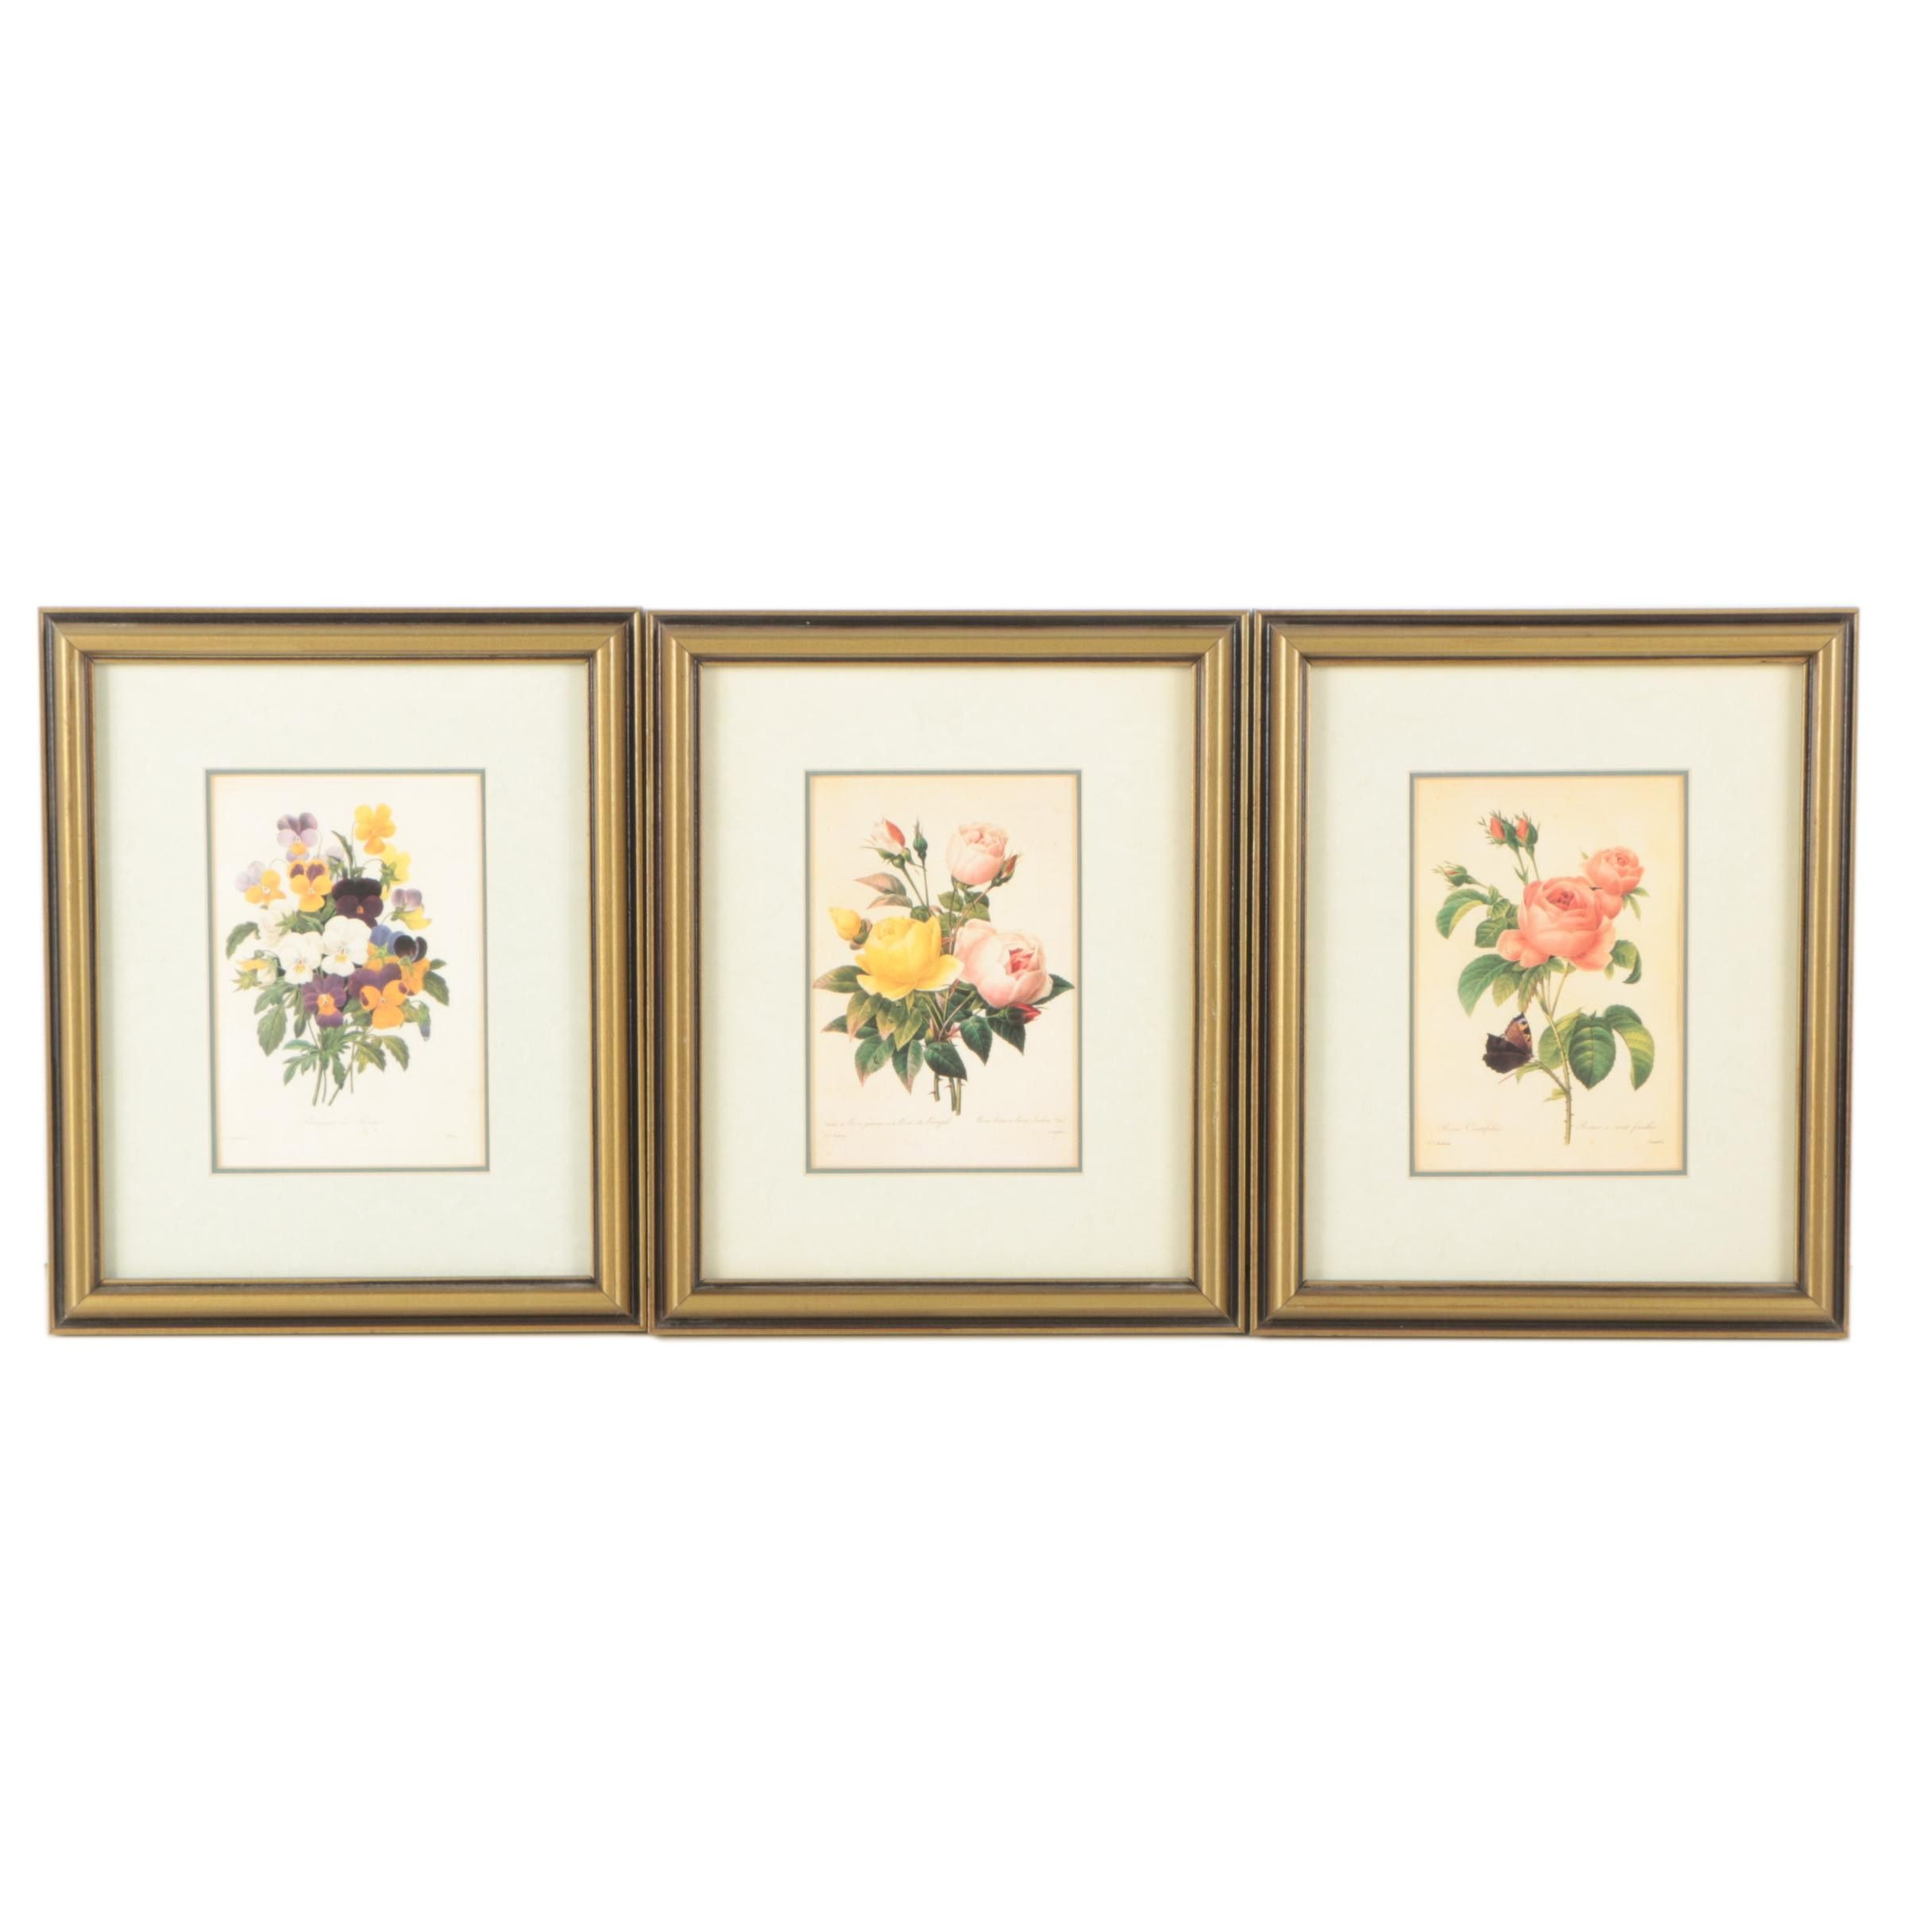 Offset Lithographic Reproduction Prints of Botanical Illustrations